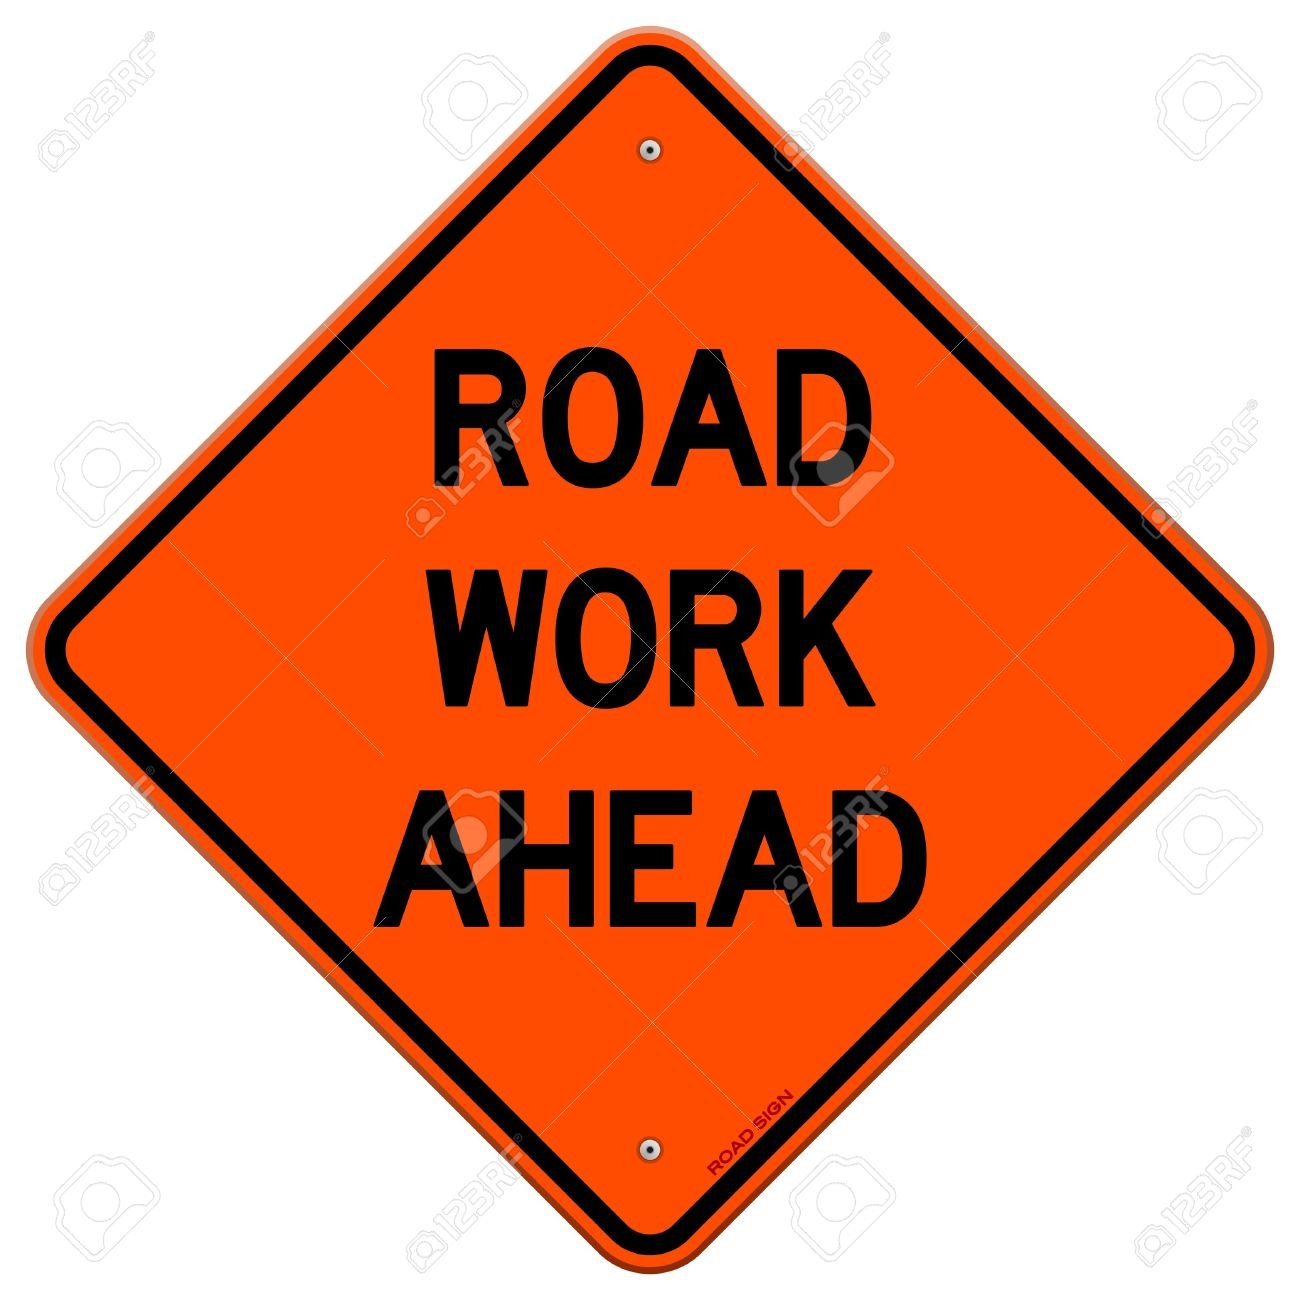 Road Work Ahead Sign Royalty Free Cliparts, Vectors, And Stock.